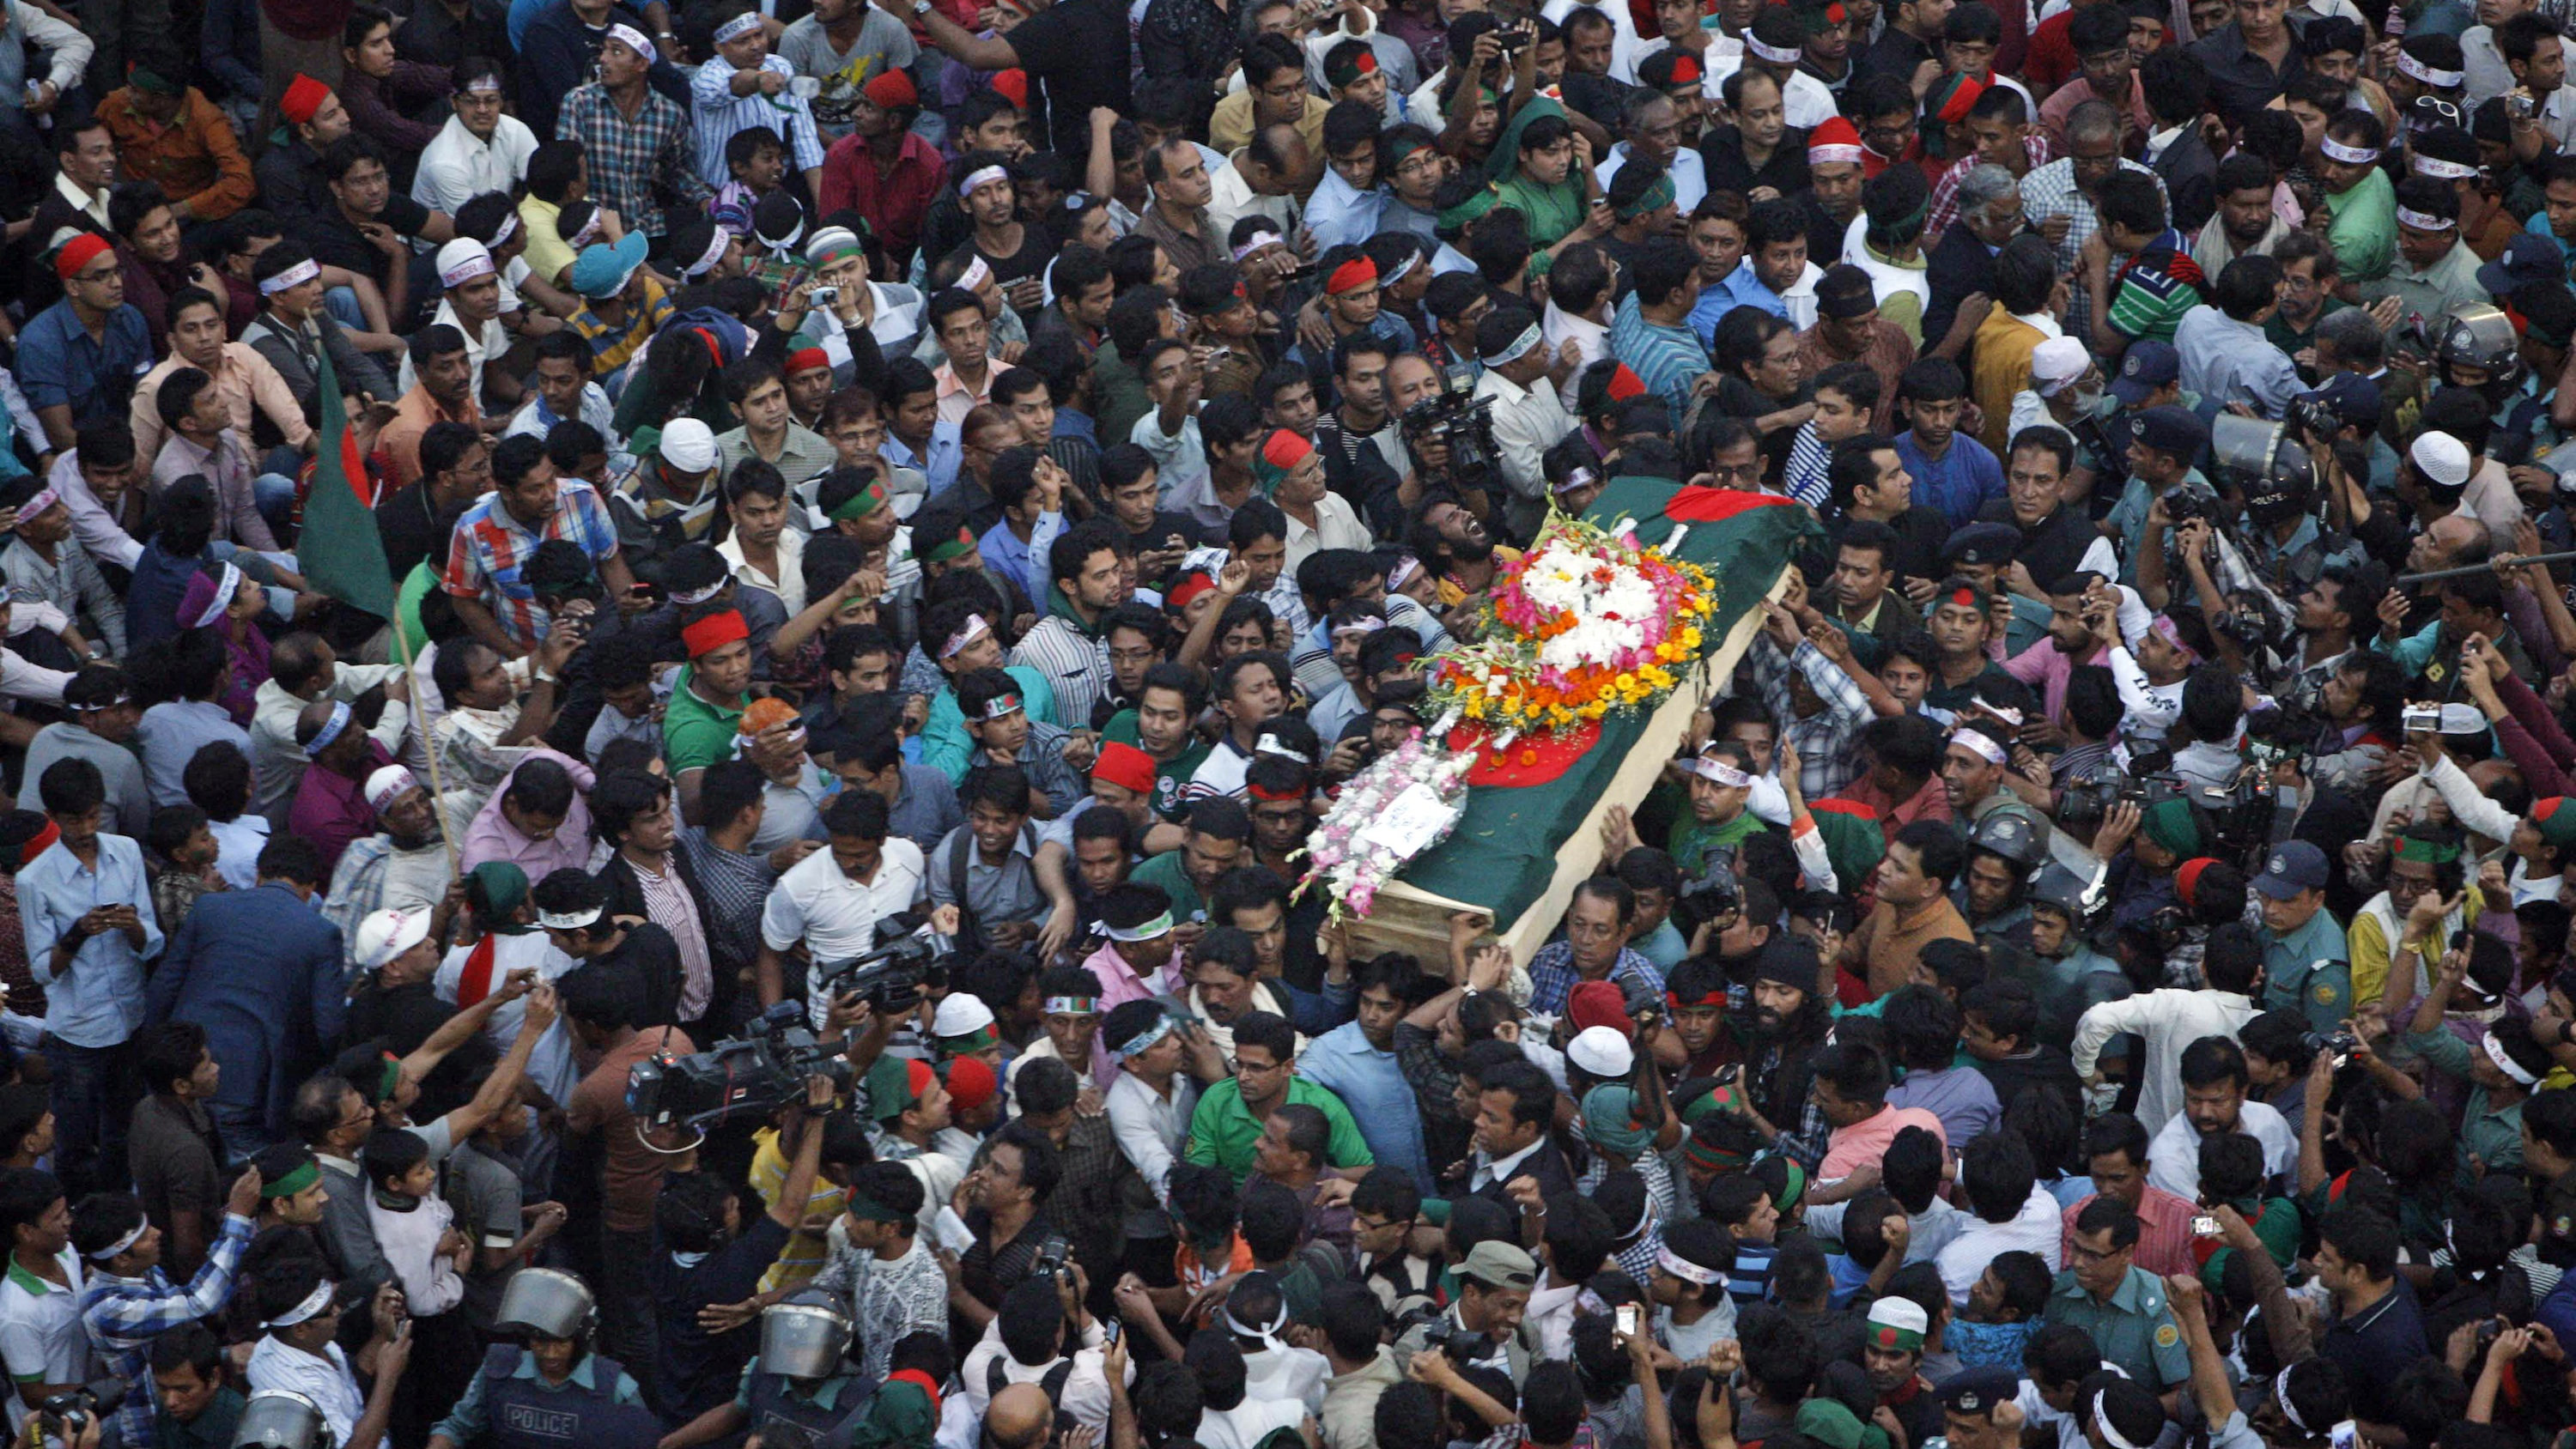 Bangladeshi mourners carry the coffin containing the body of blogger Ahmed Rajib Haider for funeral in Dhaka, Bangladesh. (Feb. 2013)